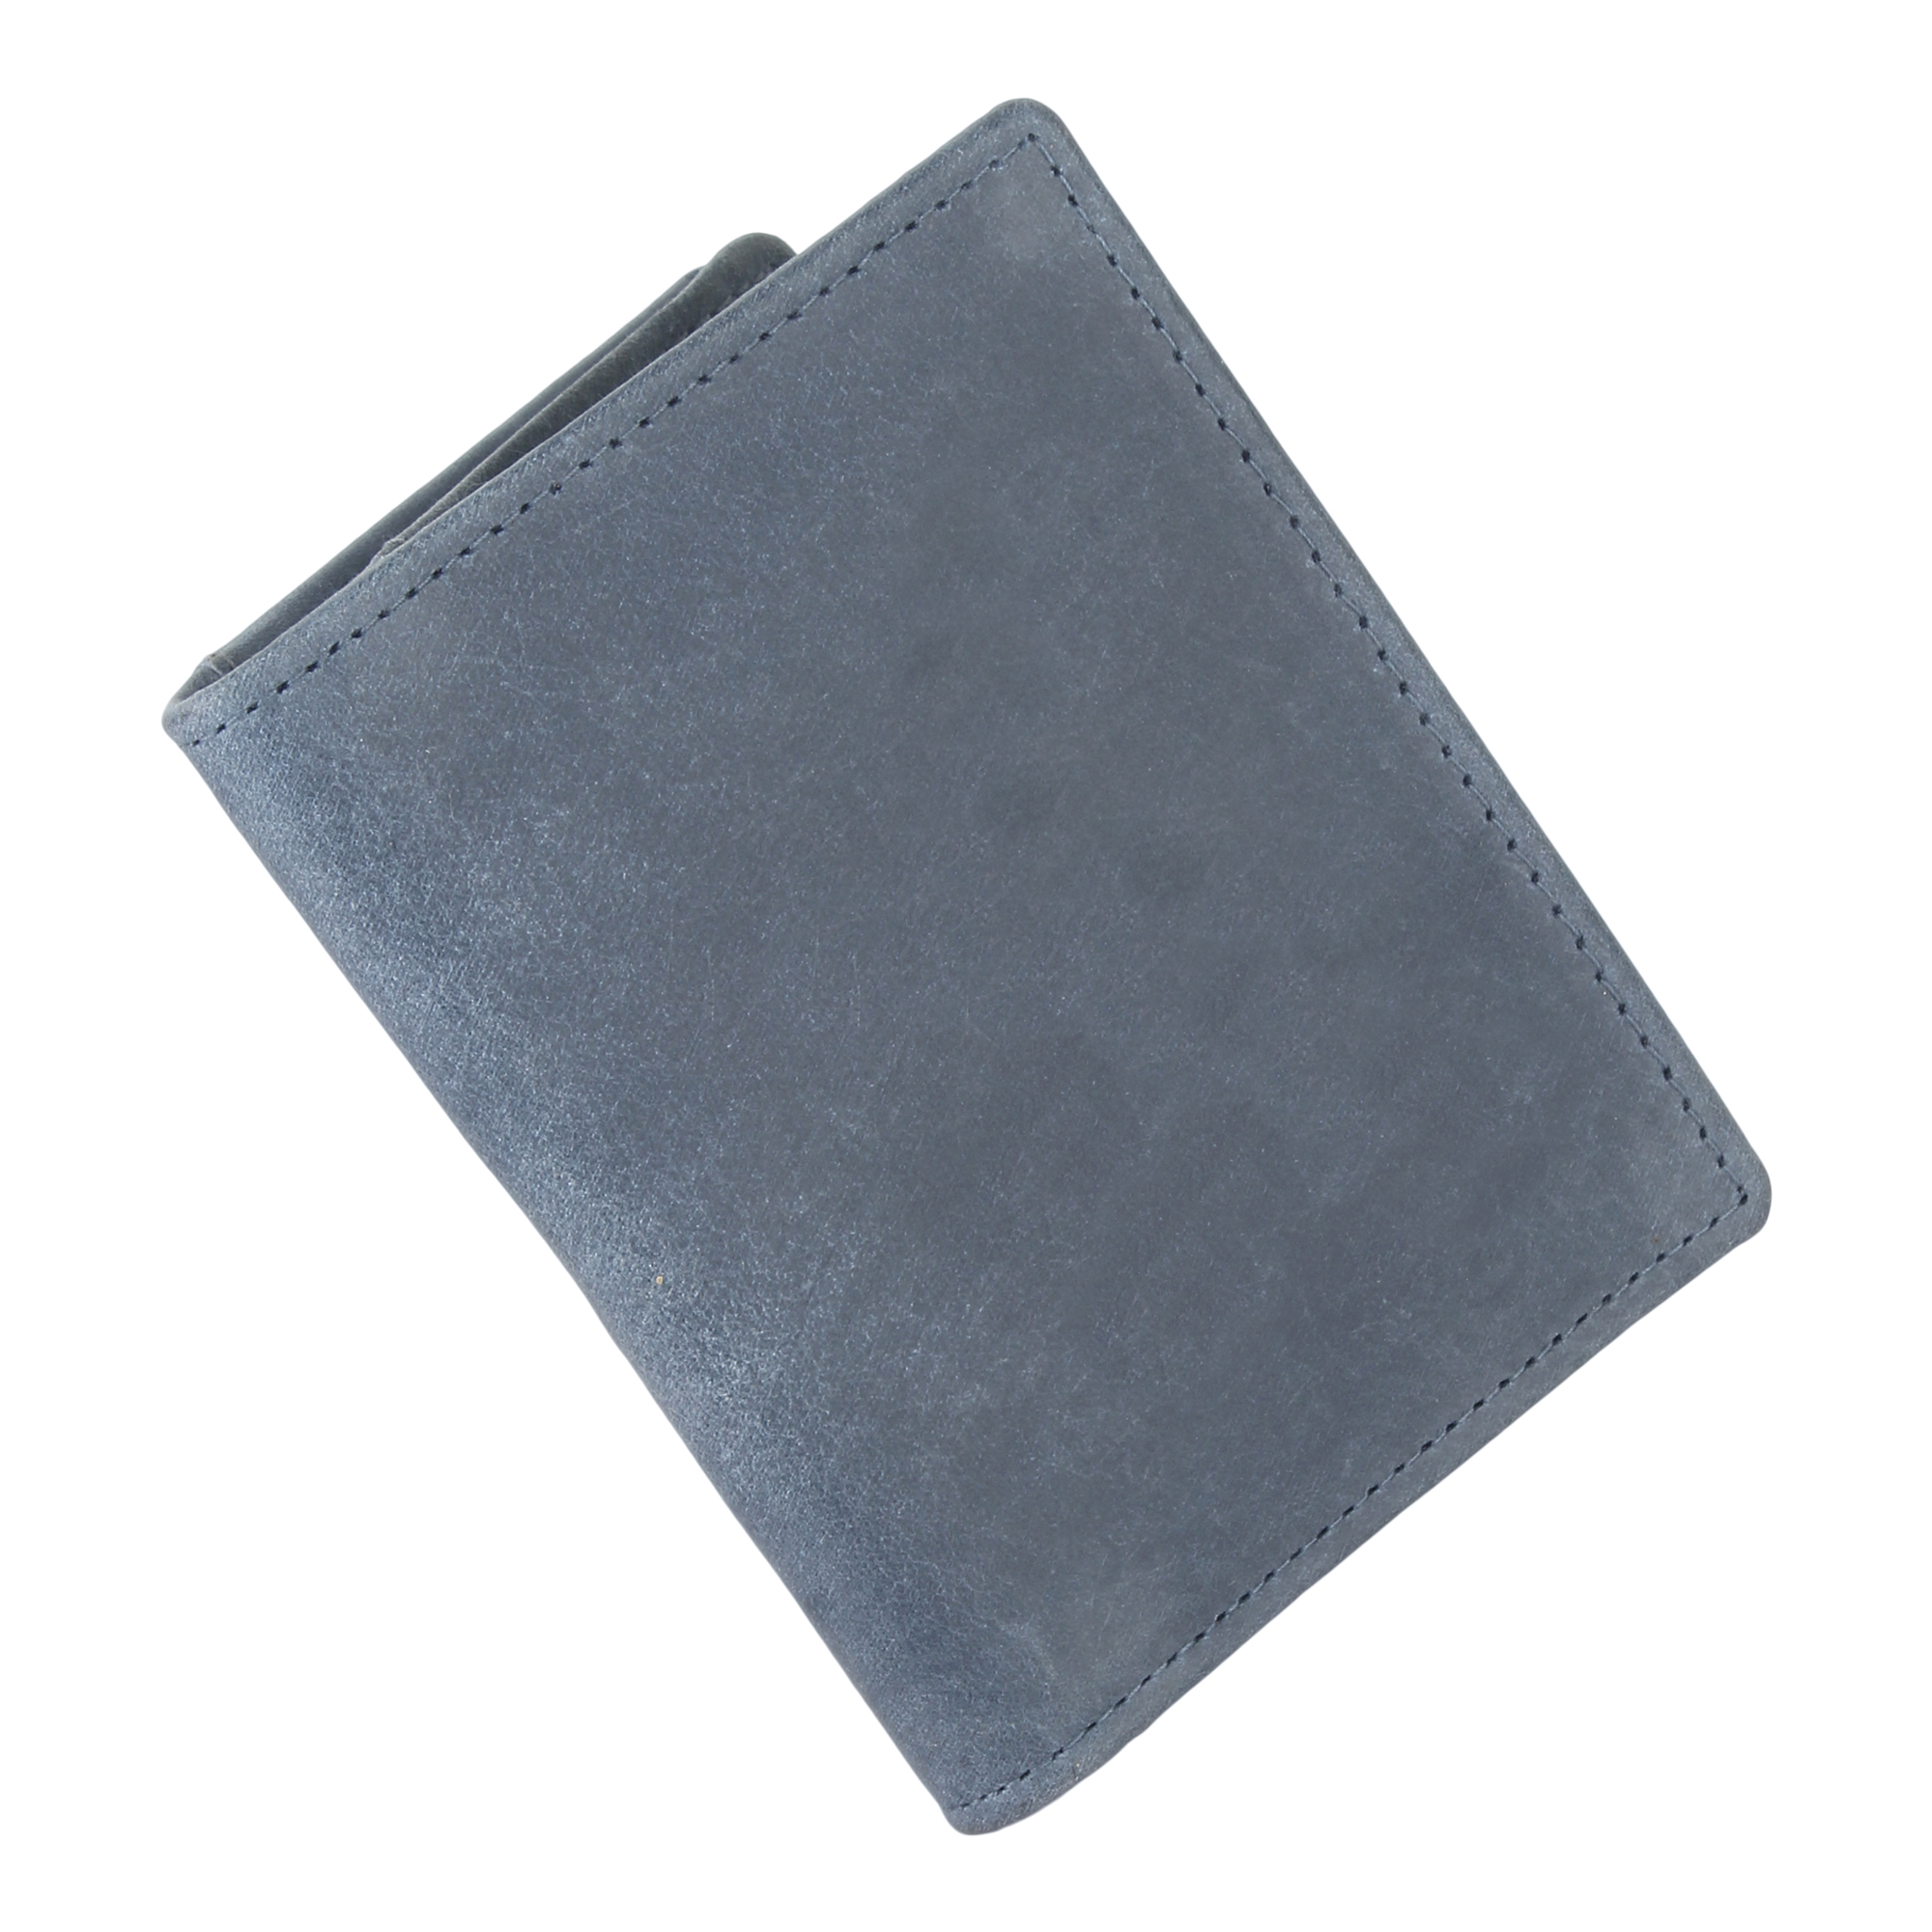 Leather Card Holder Wallet Manufacturers In Iraq, Card Holder Wallet Suppliers In Iraq, Card Holder Wallet Wholesalers In Iraq, Card Holder Wallet Traders In Iraq